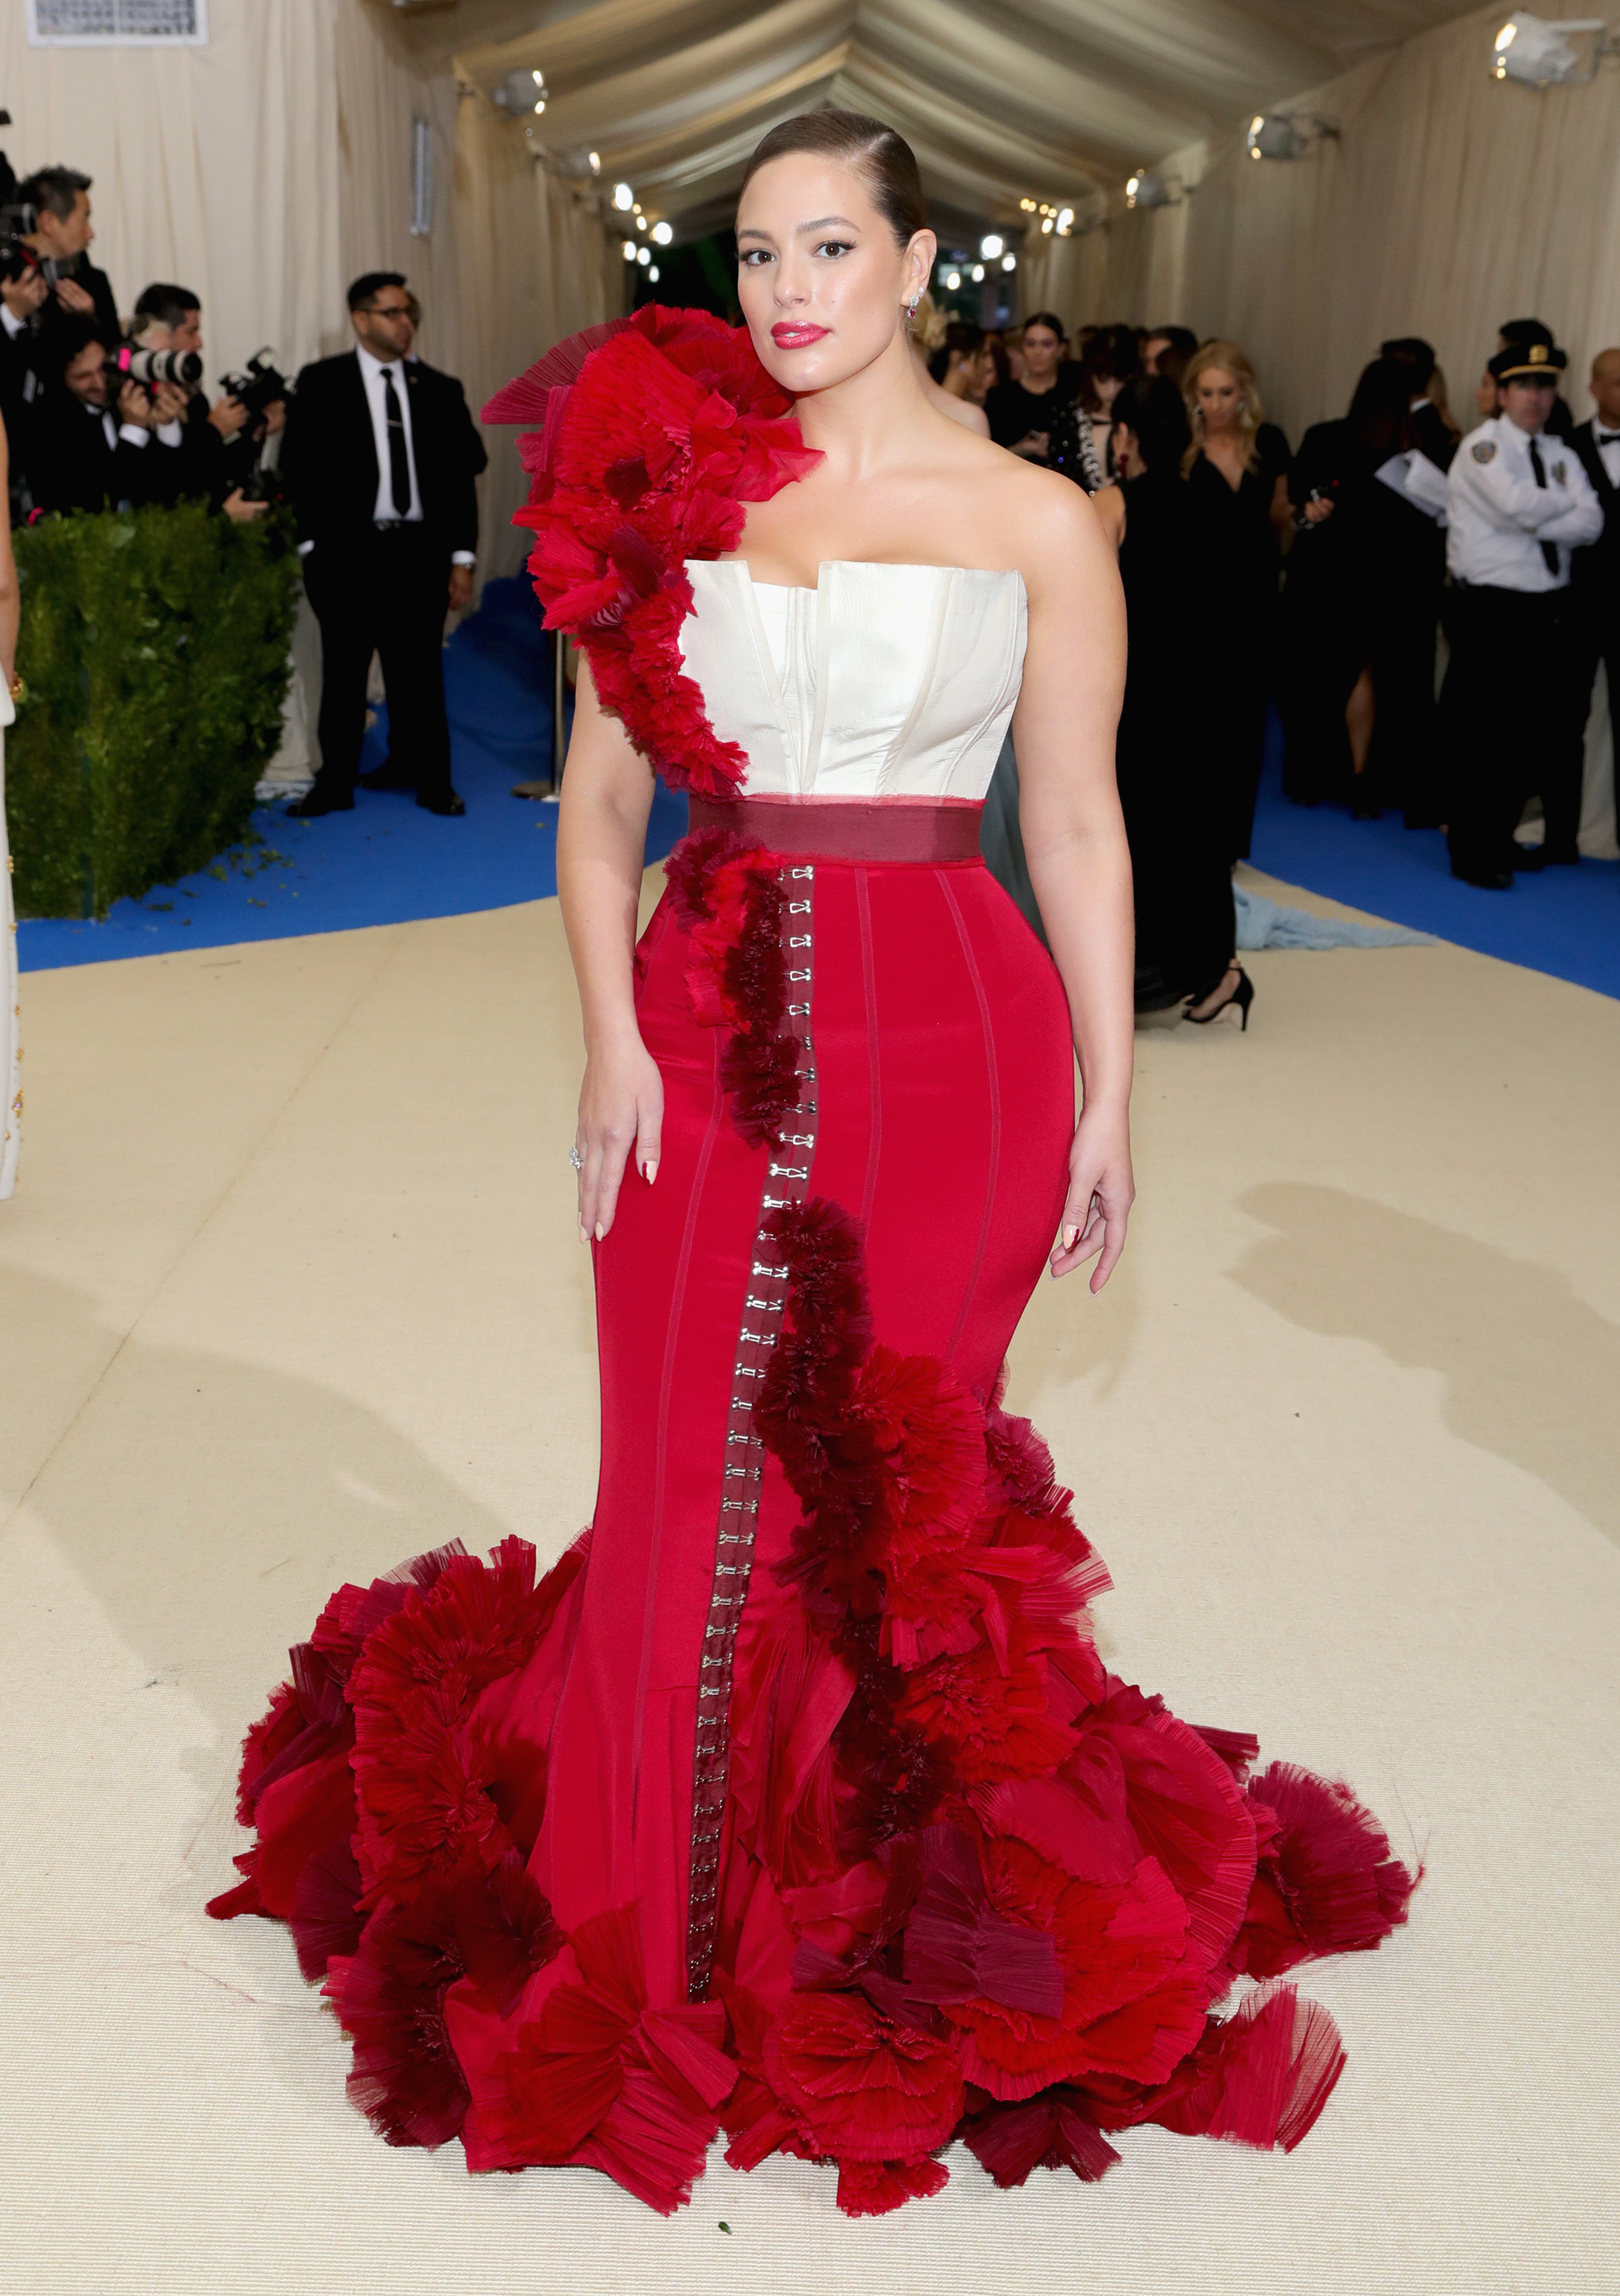 """<p><a href=""""http://style.nine.com.au/ashley-graham"""" target=""""_blank"""" draggable=""""false"""">Supermodel Ashley Graham</a>has revealed that she skipped last year's coveted<a href=""""https://style.nine.com.au/met-gala"""" target=""""_blank"""" draggable=""""false"""">Met Gala Ball</a>as no designer would dress her.</p> <p>The 29-year-old said that she was put 'on hold' for the 2016 event, meaning she was yet to officially receive an invitation but with her curvy body shape not fitted to the rail thin sample size ranges most fashion houses lend from, she  ended up missing the occasion altogether.</p> <p>""""I couldn't get a designer to dress me. You can't just show up in jeans and a T-shirt,"""" Ashley told <em><a href=""""https://www.thecut.com/2017/08/ashley-graham-supermodel.html"""" target=""""_blank"""" draggable=""""false"""">New York Magazine.</a></em></p> <p>Fast-forward a year and the model was a standout at this year's Met Gala,<a href=""""https://style.nine.com.au/2017/05/02/08/15/met-gala-red-carpet-2017/72"""" target=""""_blank"""" draggable=""""false""""> ruling the red carpet in a custom gown from H&M.</a></p> <p>""""Rihanna said I looked 'hot as f**k. I had no idea what to say to her. I was just like, 'You slay every Met, Rihanna!' said Graham. </p> <p>Themodel-of-the-moment's refusal to fit the sample size mould has seen her achieve mainstream success in the fashion industry and become a champion of body positivity for women with fuller figures.</p> <p>Clad in head-to-toe   Dolce & Gabbana, with jewels from Tiffany & Co, Cartier and Van Cleef & Arpels adorning her body, Ashley has given a revealing interview to<em> New York Magazine</em>where she spoke candidly about the issues that she has faced in her rise to the top.</p> <p>Click through to read about Ashley Graham's size struggles.</p>"""